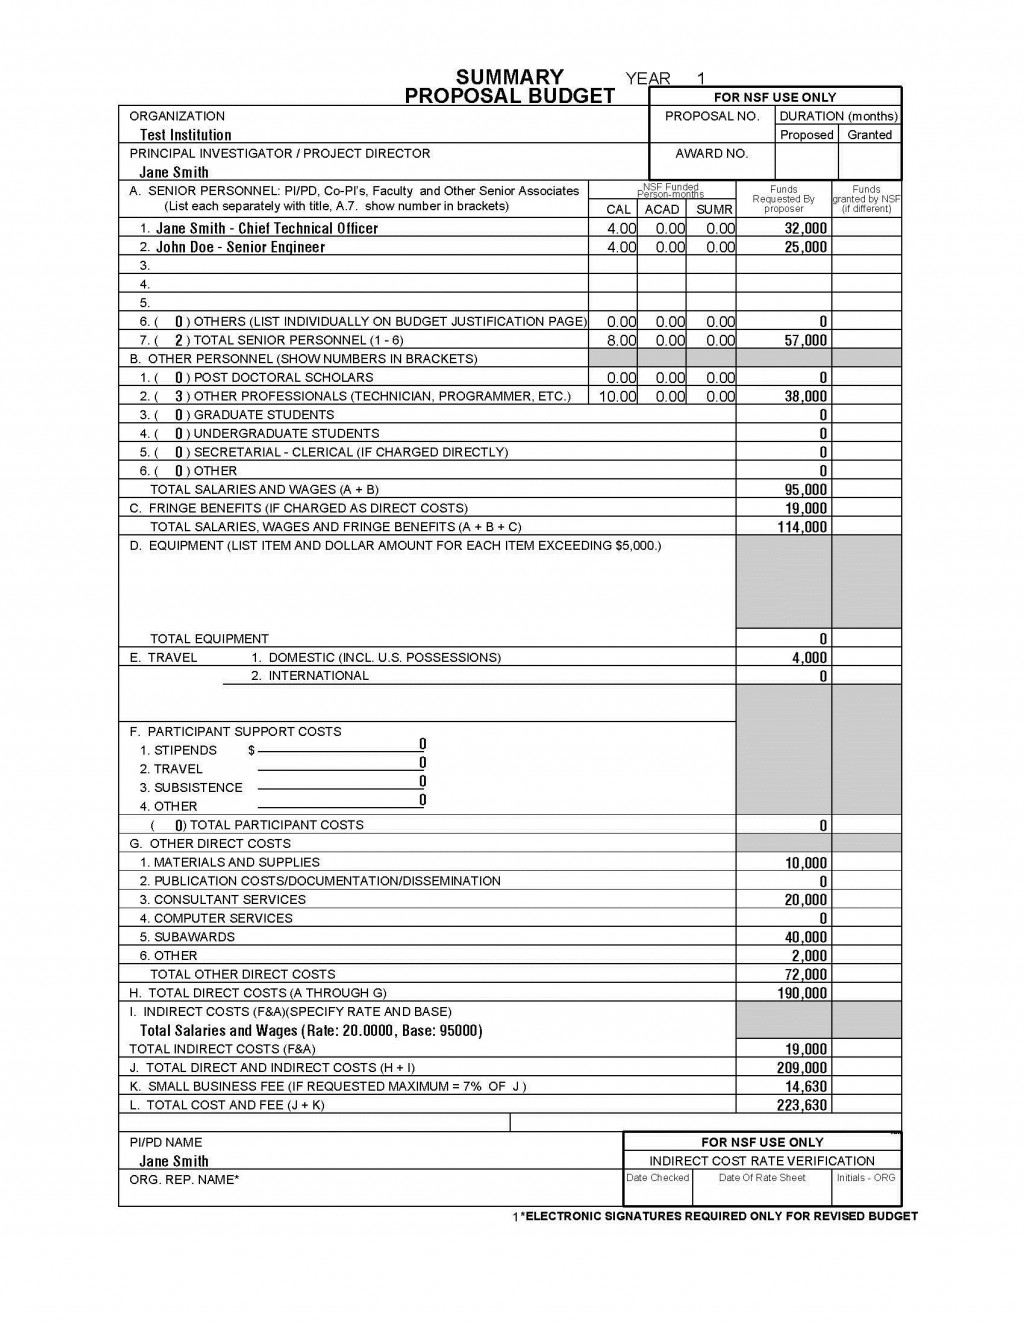 000 Fascinating Line Item Operating Budget Example Idea  Line-item For Police Department Of Template Meaning WithLarge